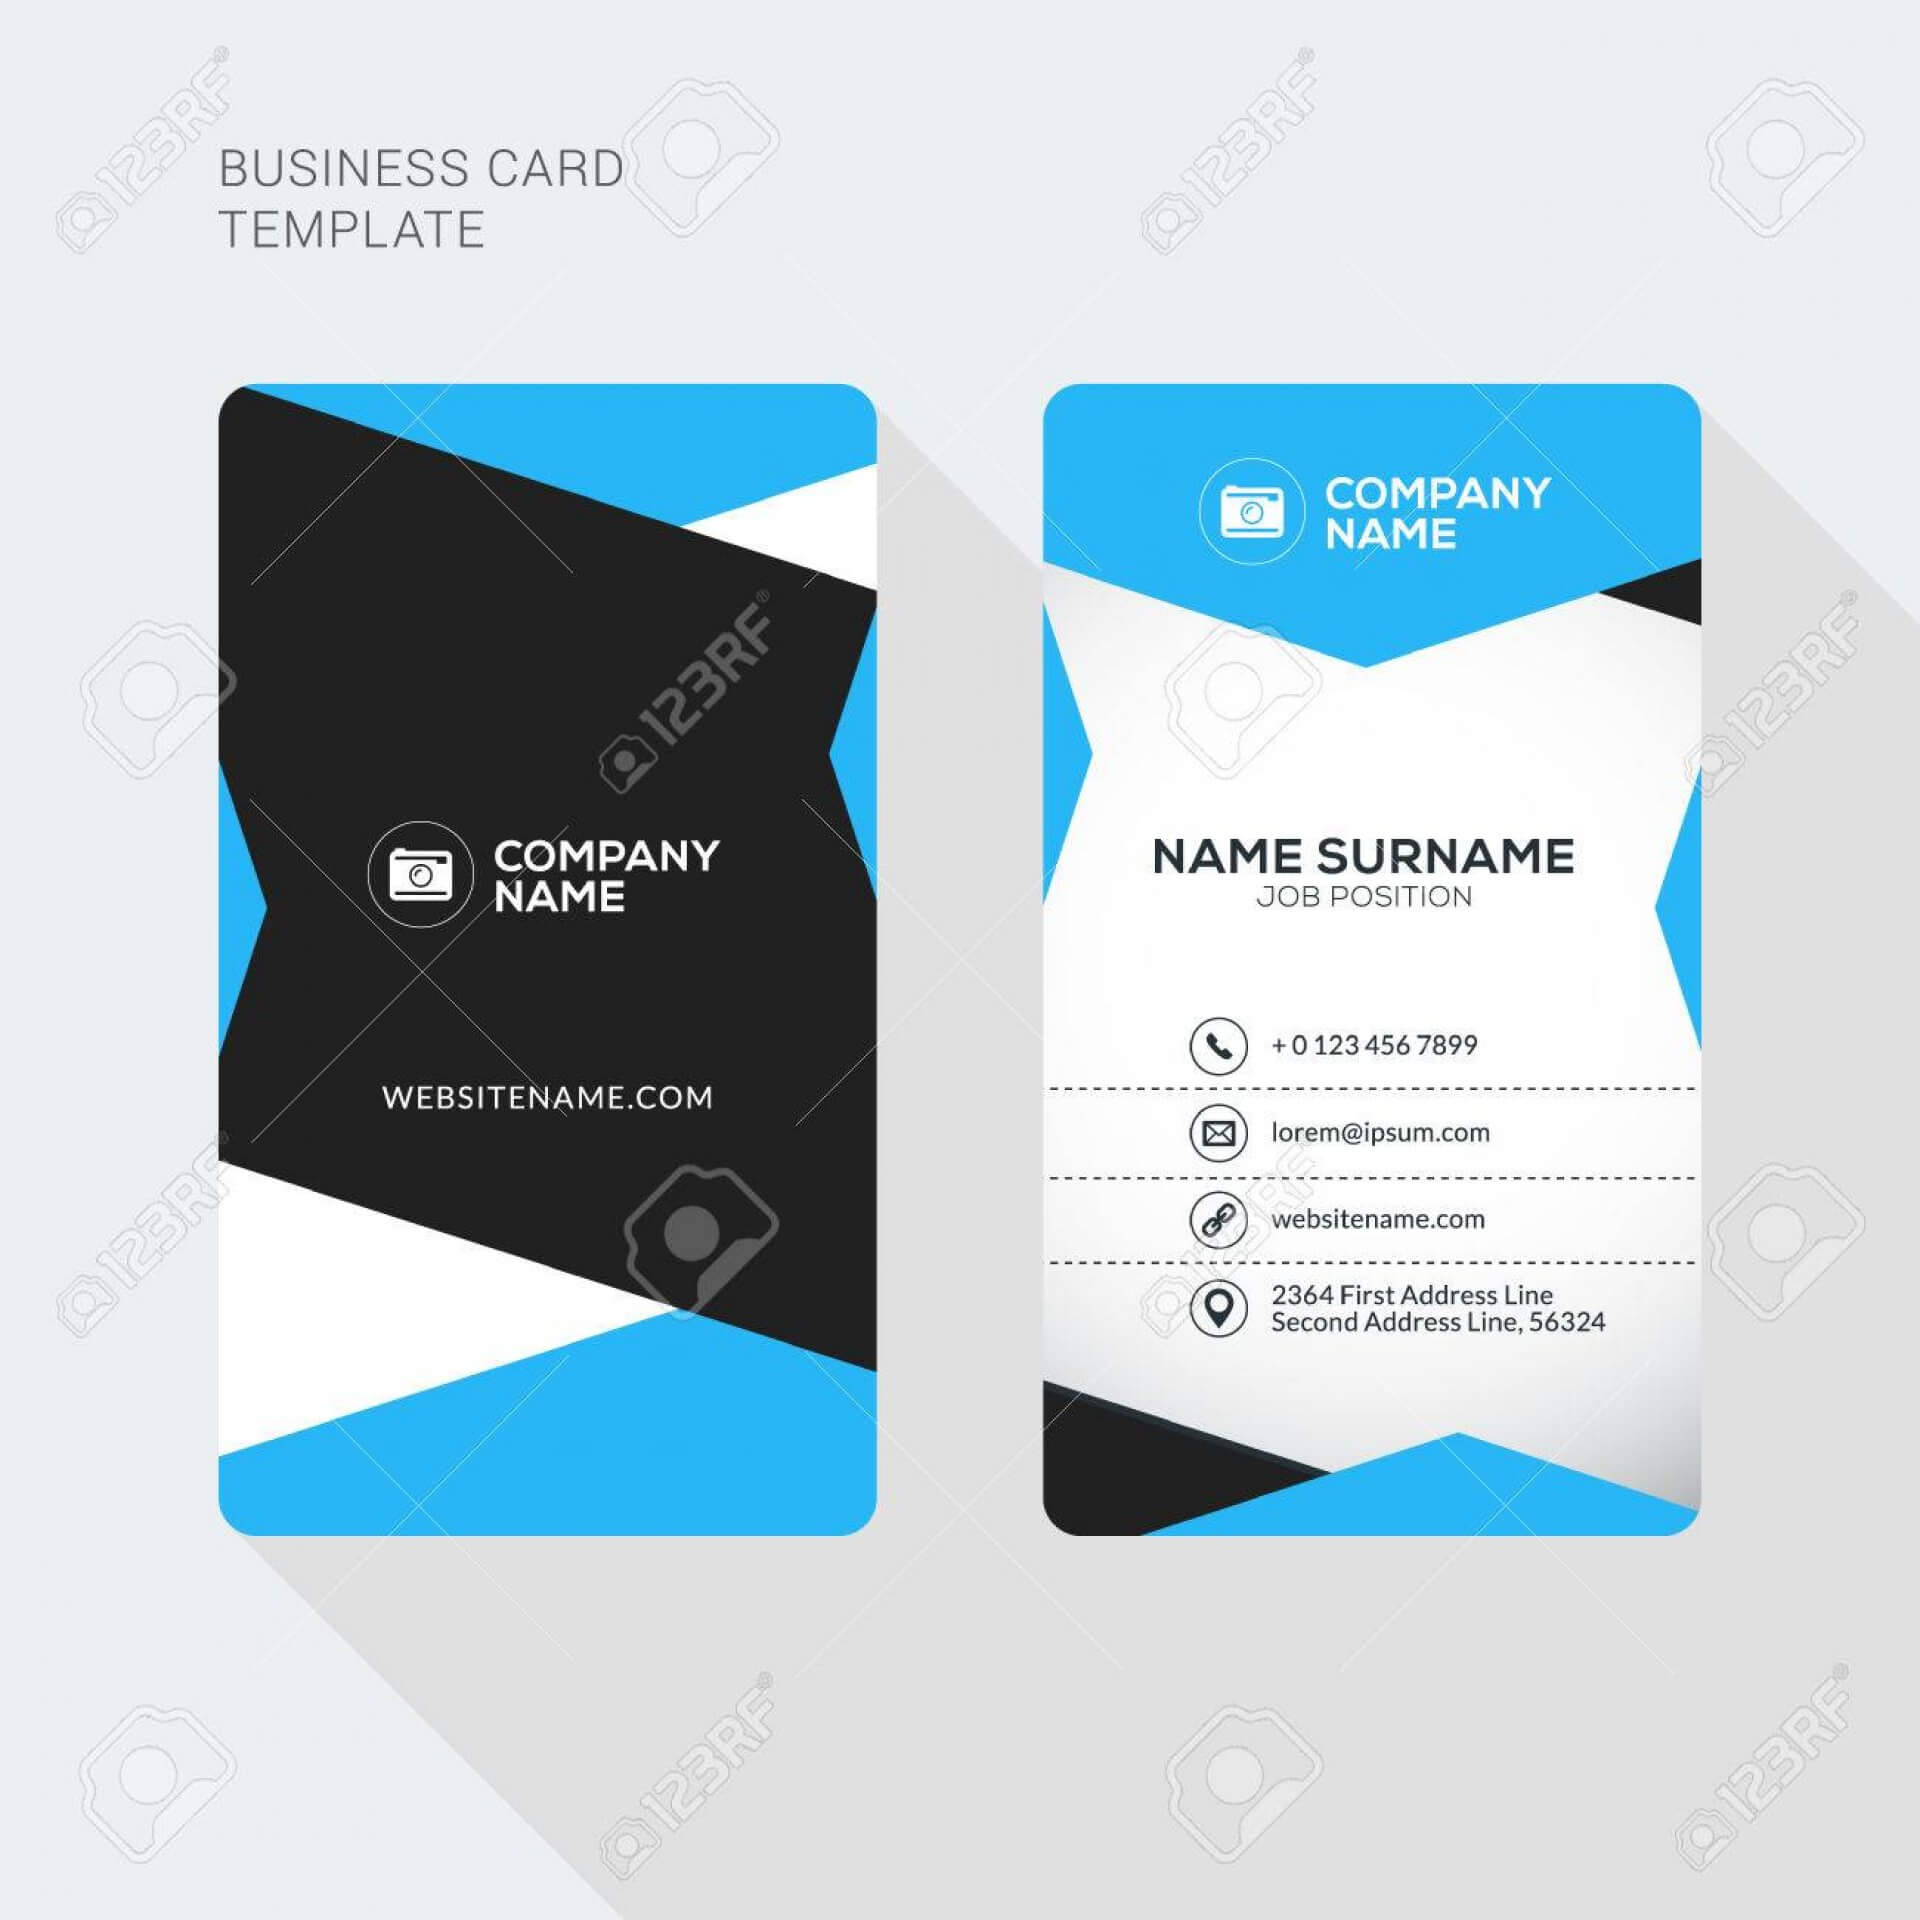 015 Template Ideas Double Sided Business Card Illustrator Pertaining To 2 Sided Business Card Template Word